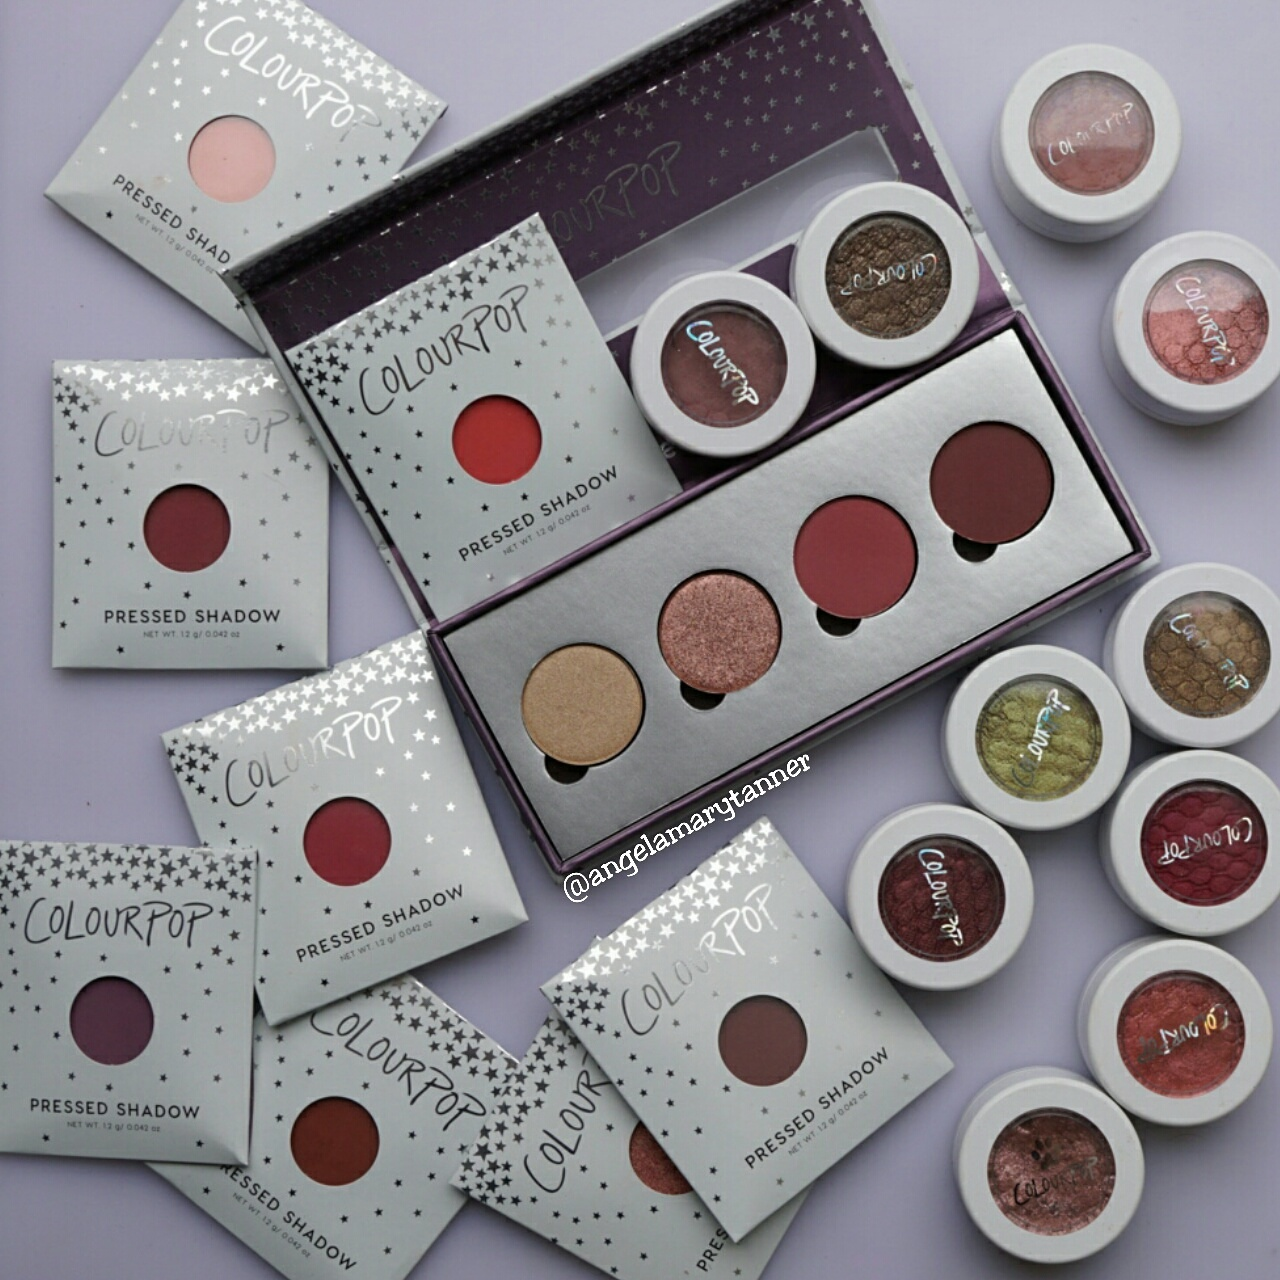 As I mentioned on IG yesterday, I haven't ordered from COLOURPOP in months.  When I buy makeup I generally justify my purchase by knowing that I'll  review it ...